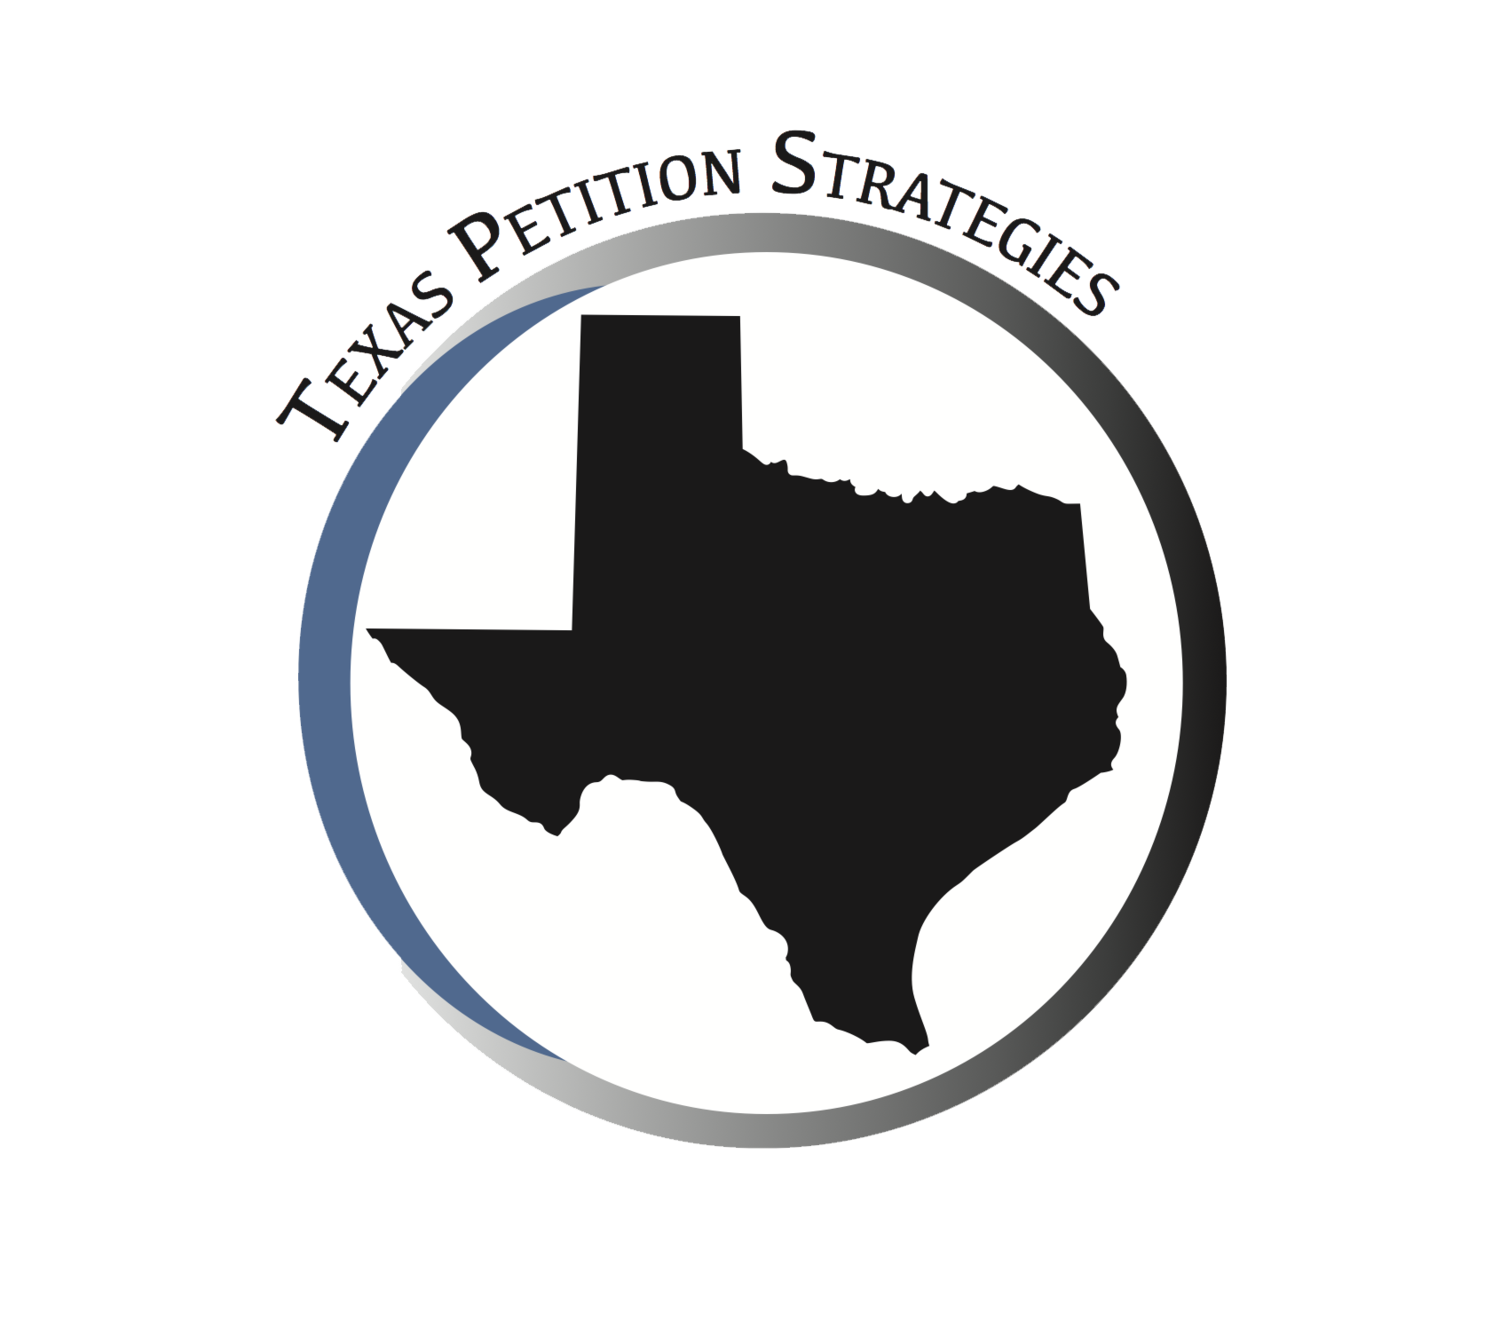 Texas Petition Strategies